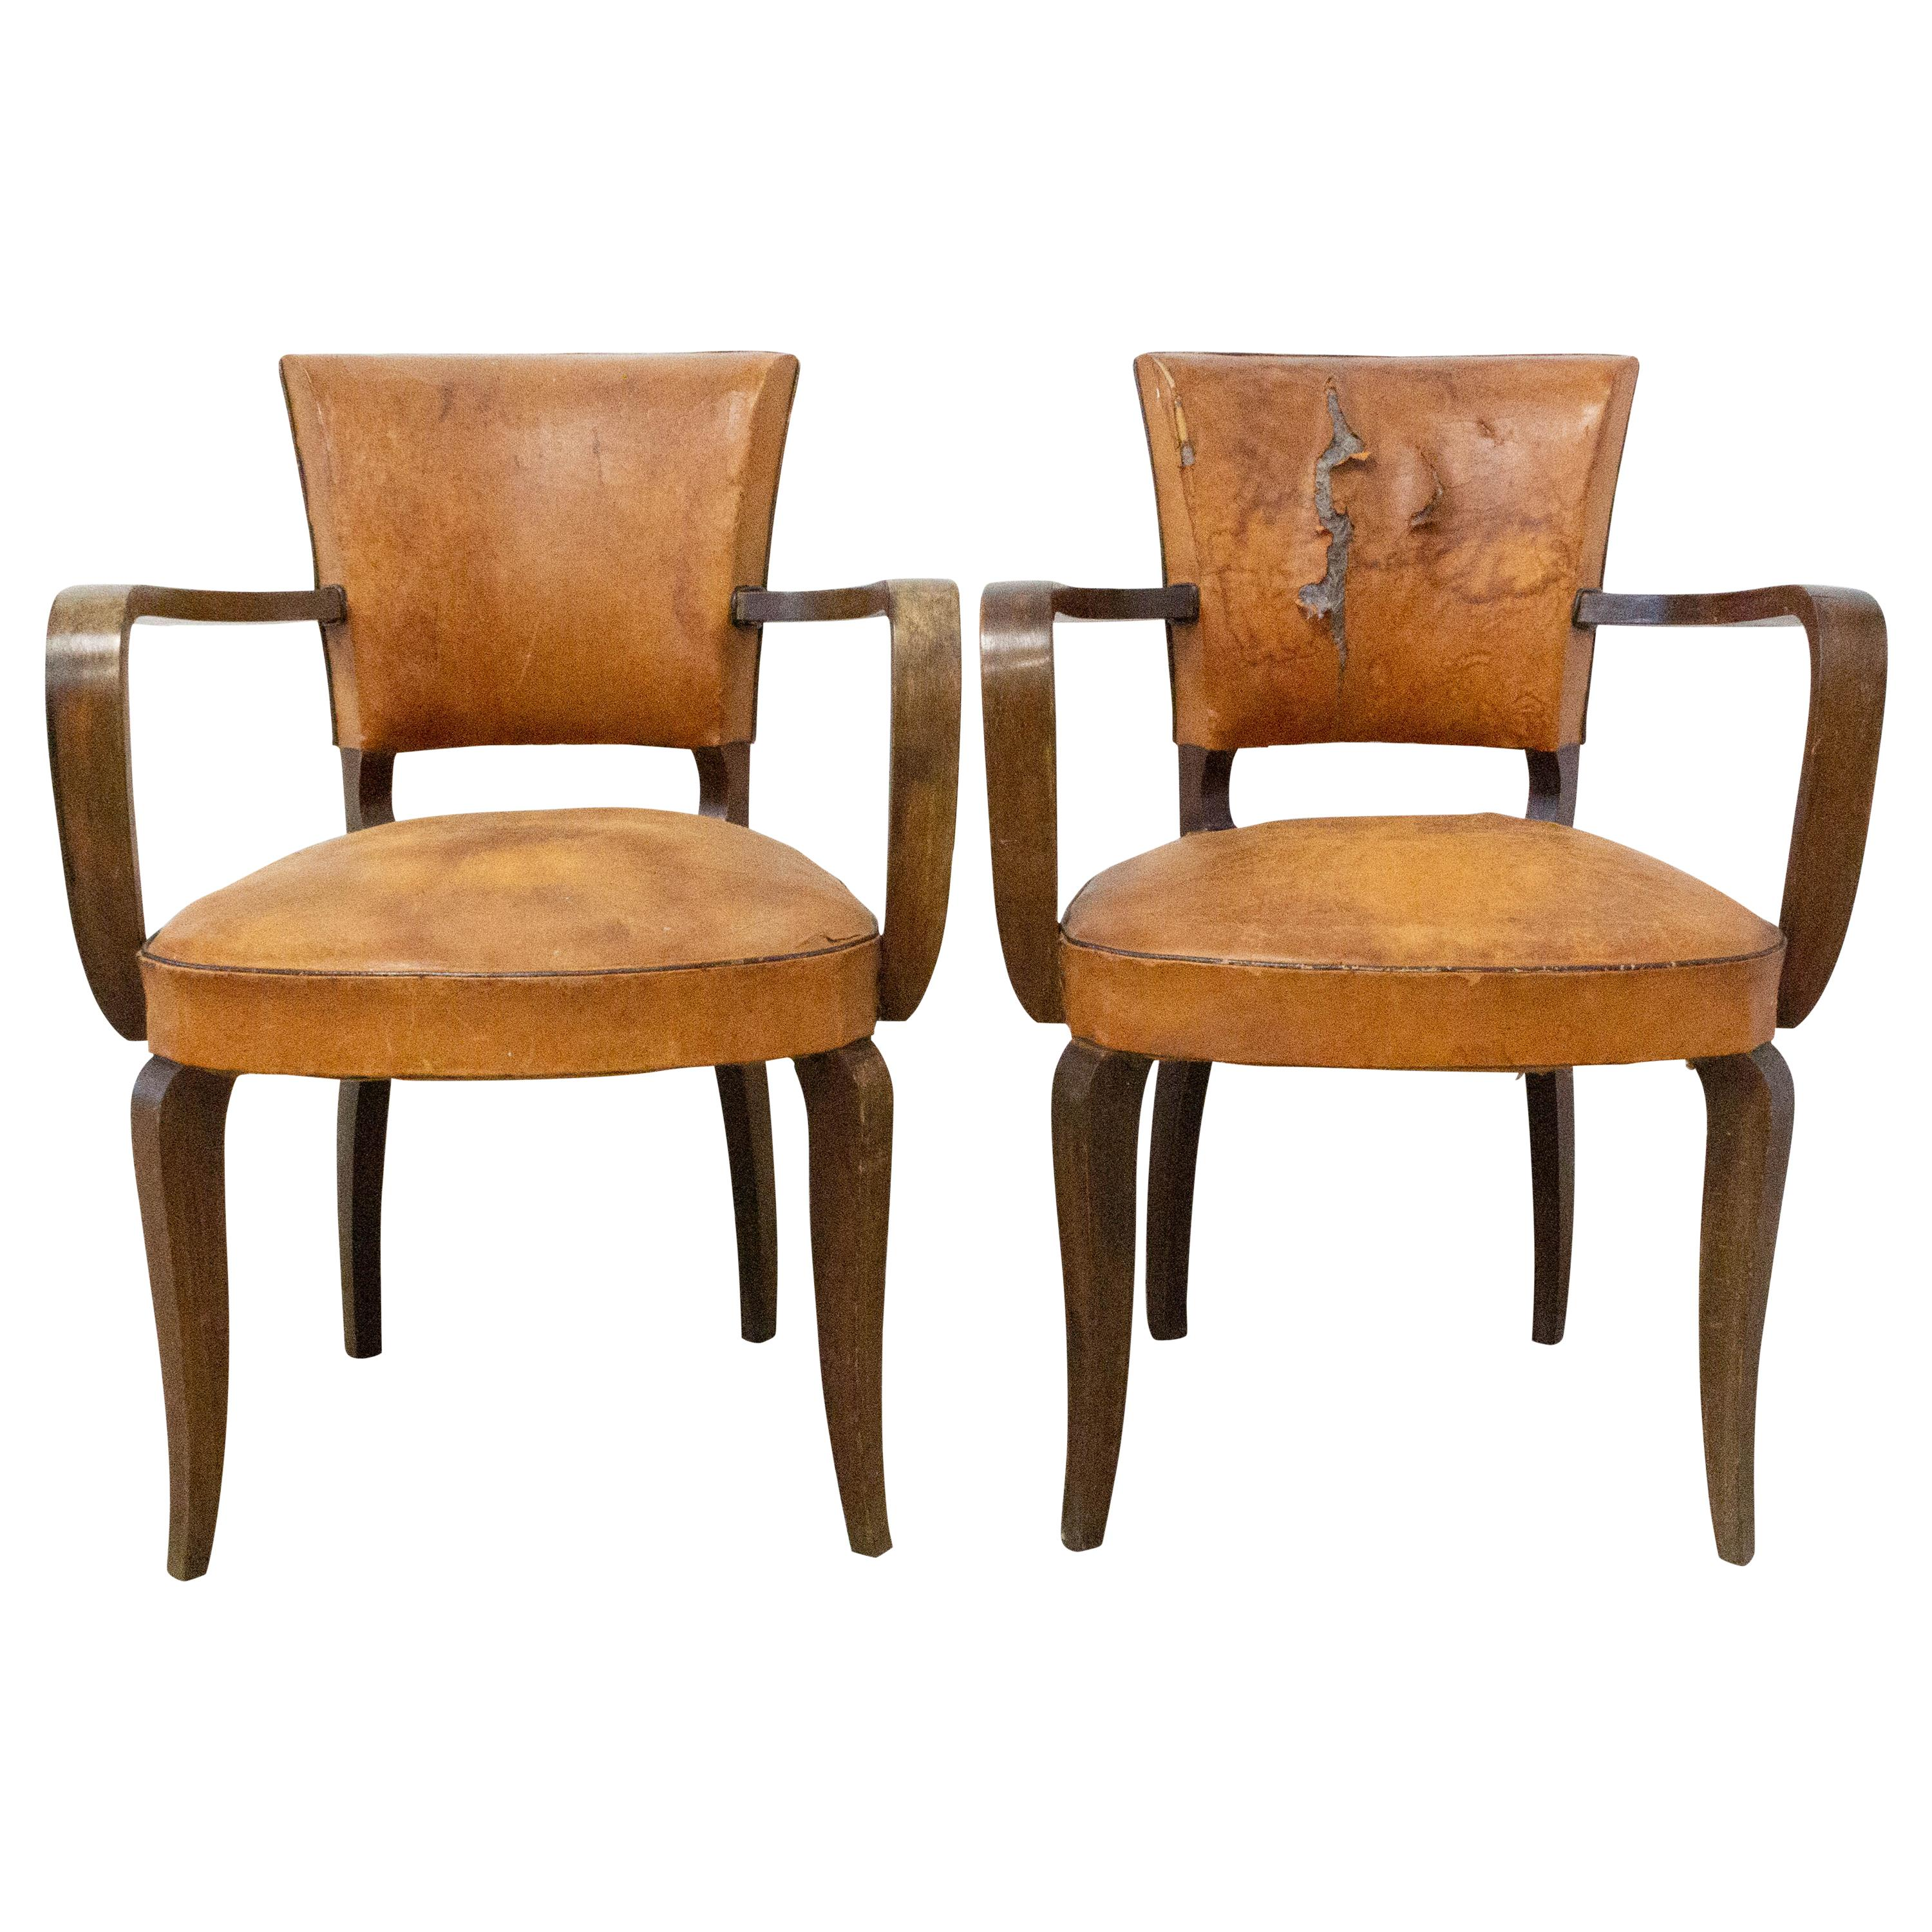 Pair of Bridge Chairs Leather French Art Deco circa 1930, to be Re-Upholstered